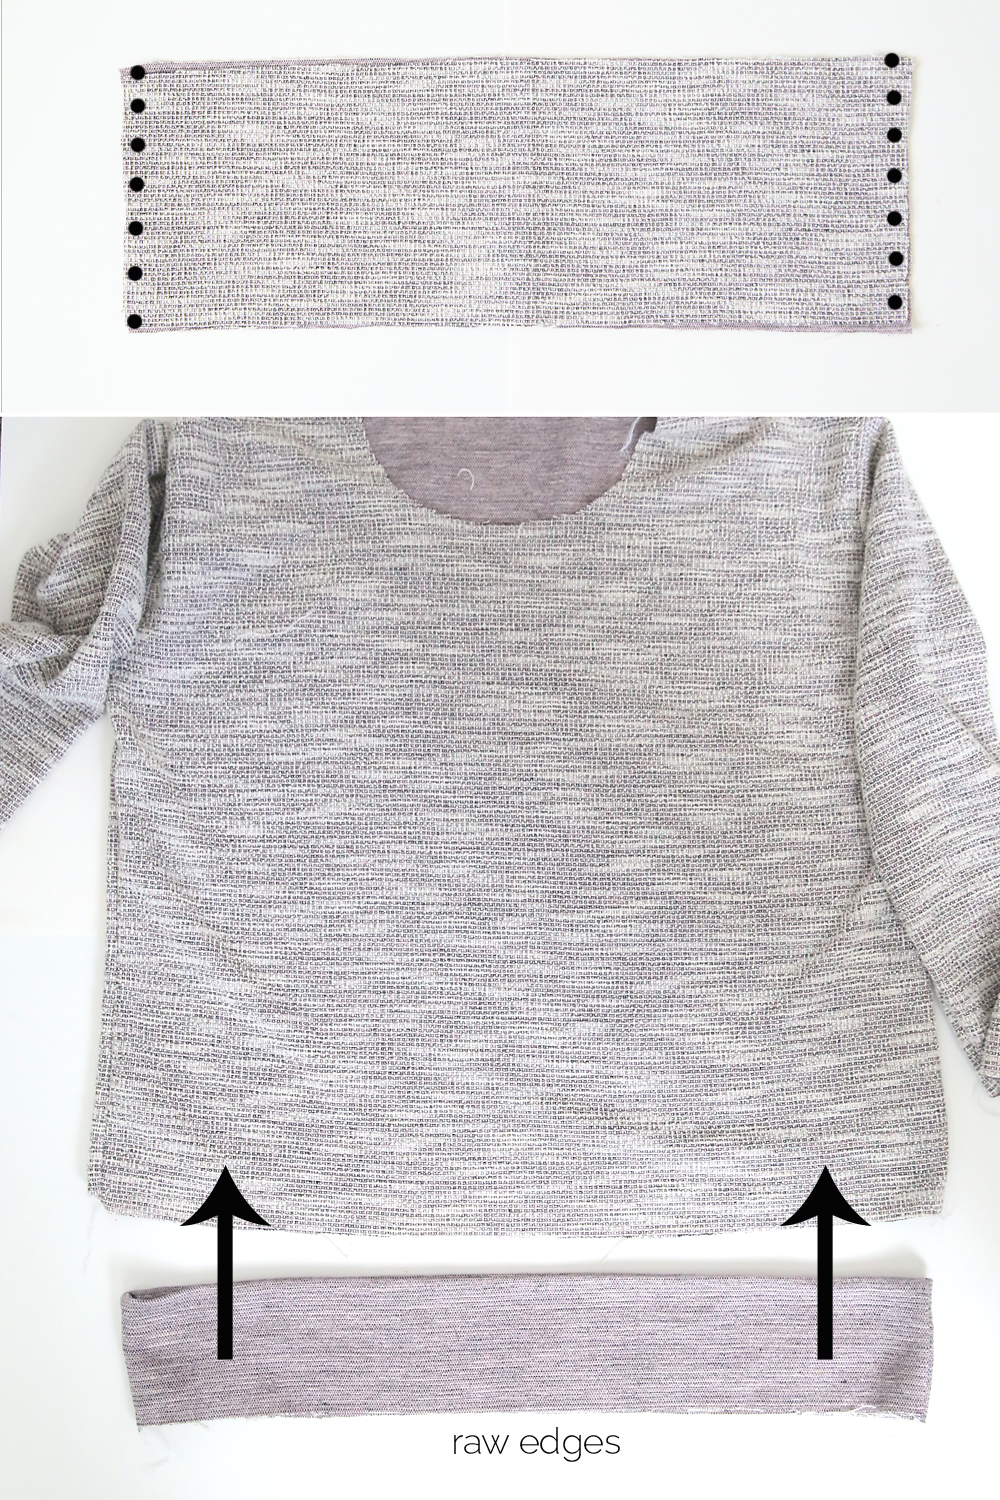 hem band with side seams marked; hem band  folded and going over the bottom edge of the sweatshirt